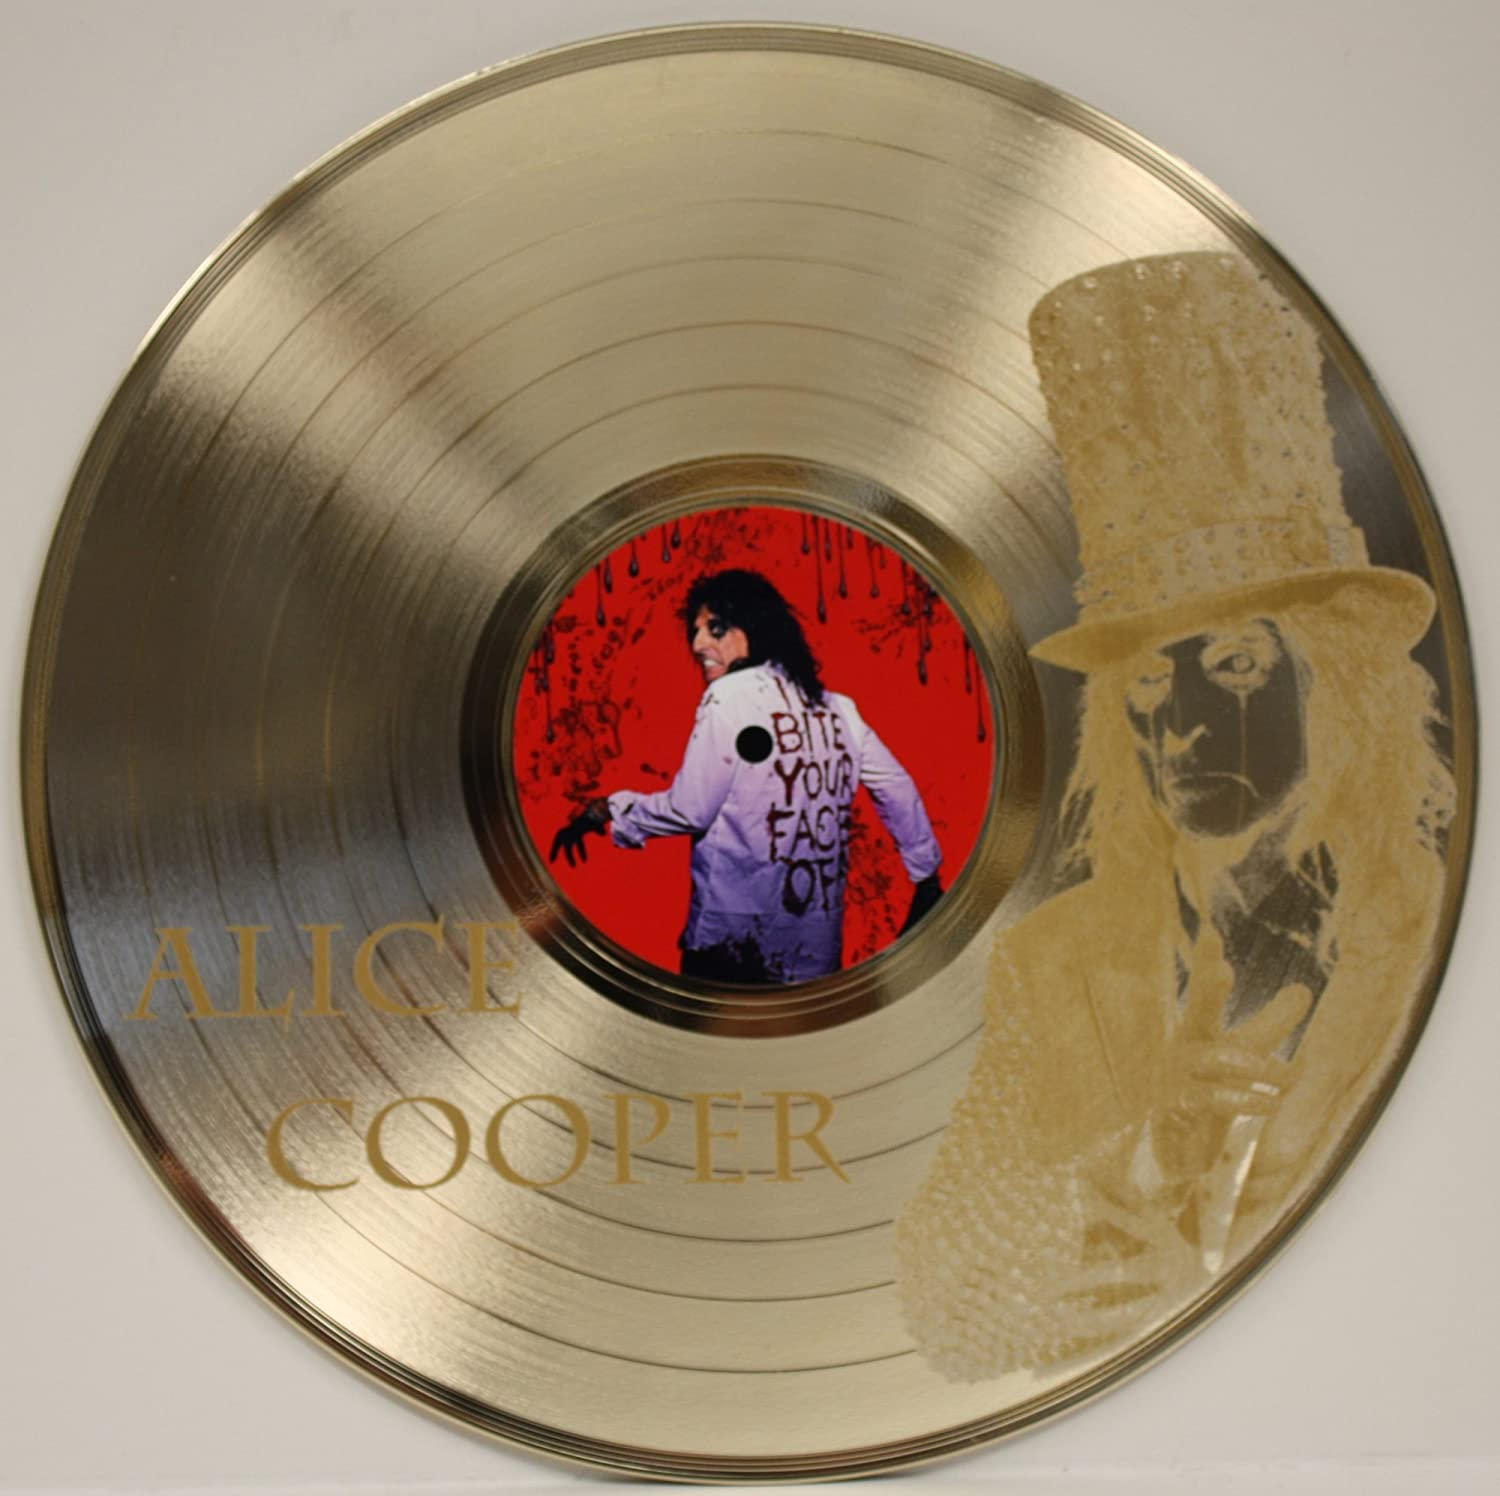 Alice Cooper Welcome To My Nightmare 2 Limited Edition Gold Clad 12' LP Laser Cut Record Wall Display. Gold Record Outlet